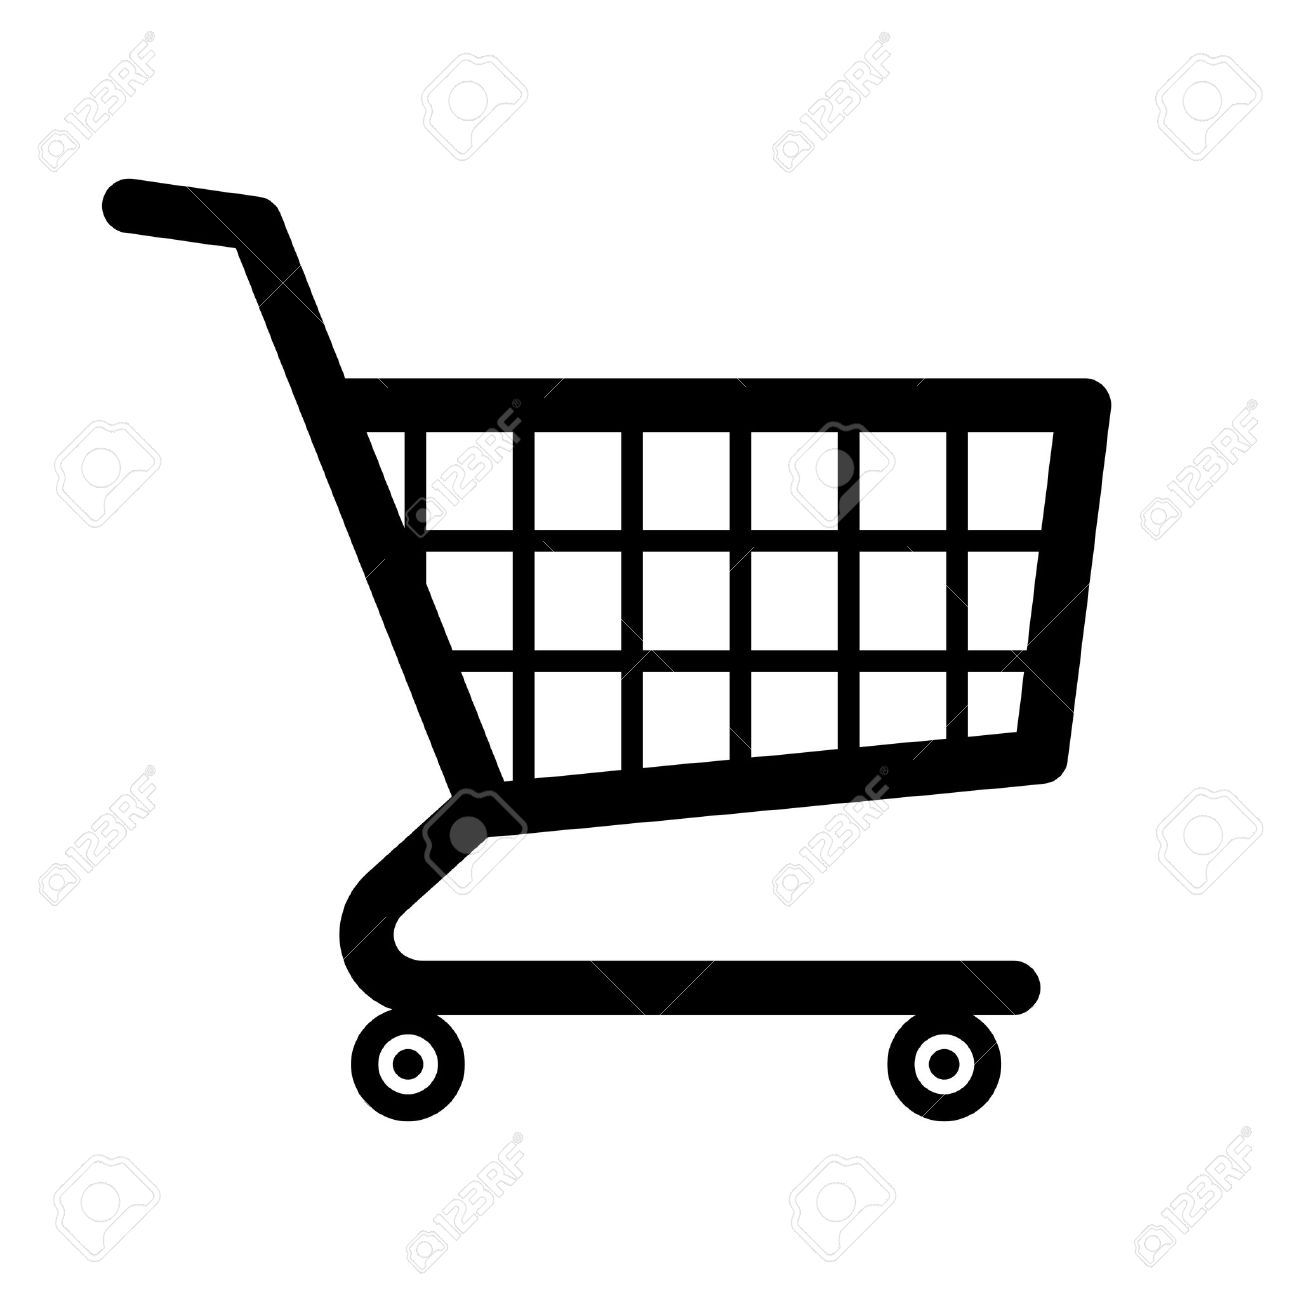 Cart clipart black and white png black and white Shopping cart clipart black and white » Clipart Portal png black and white